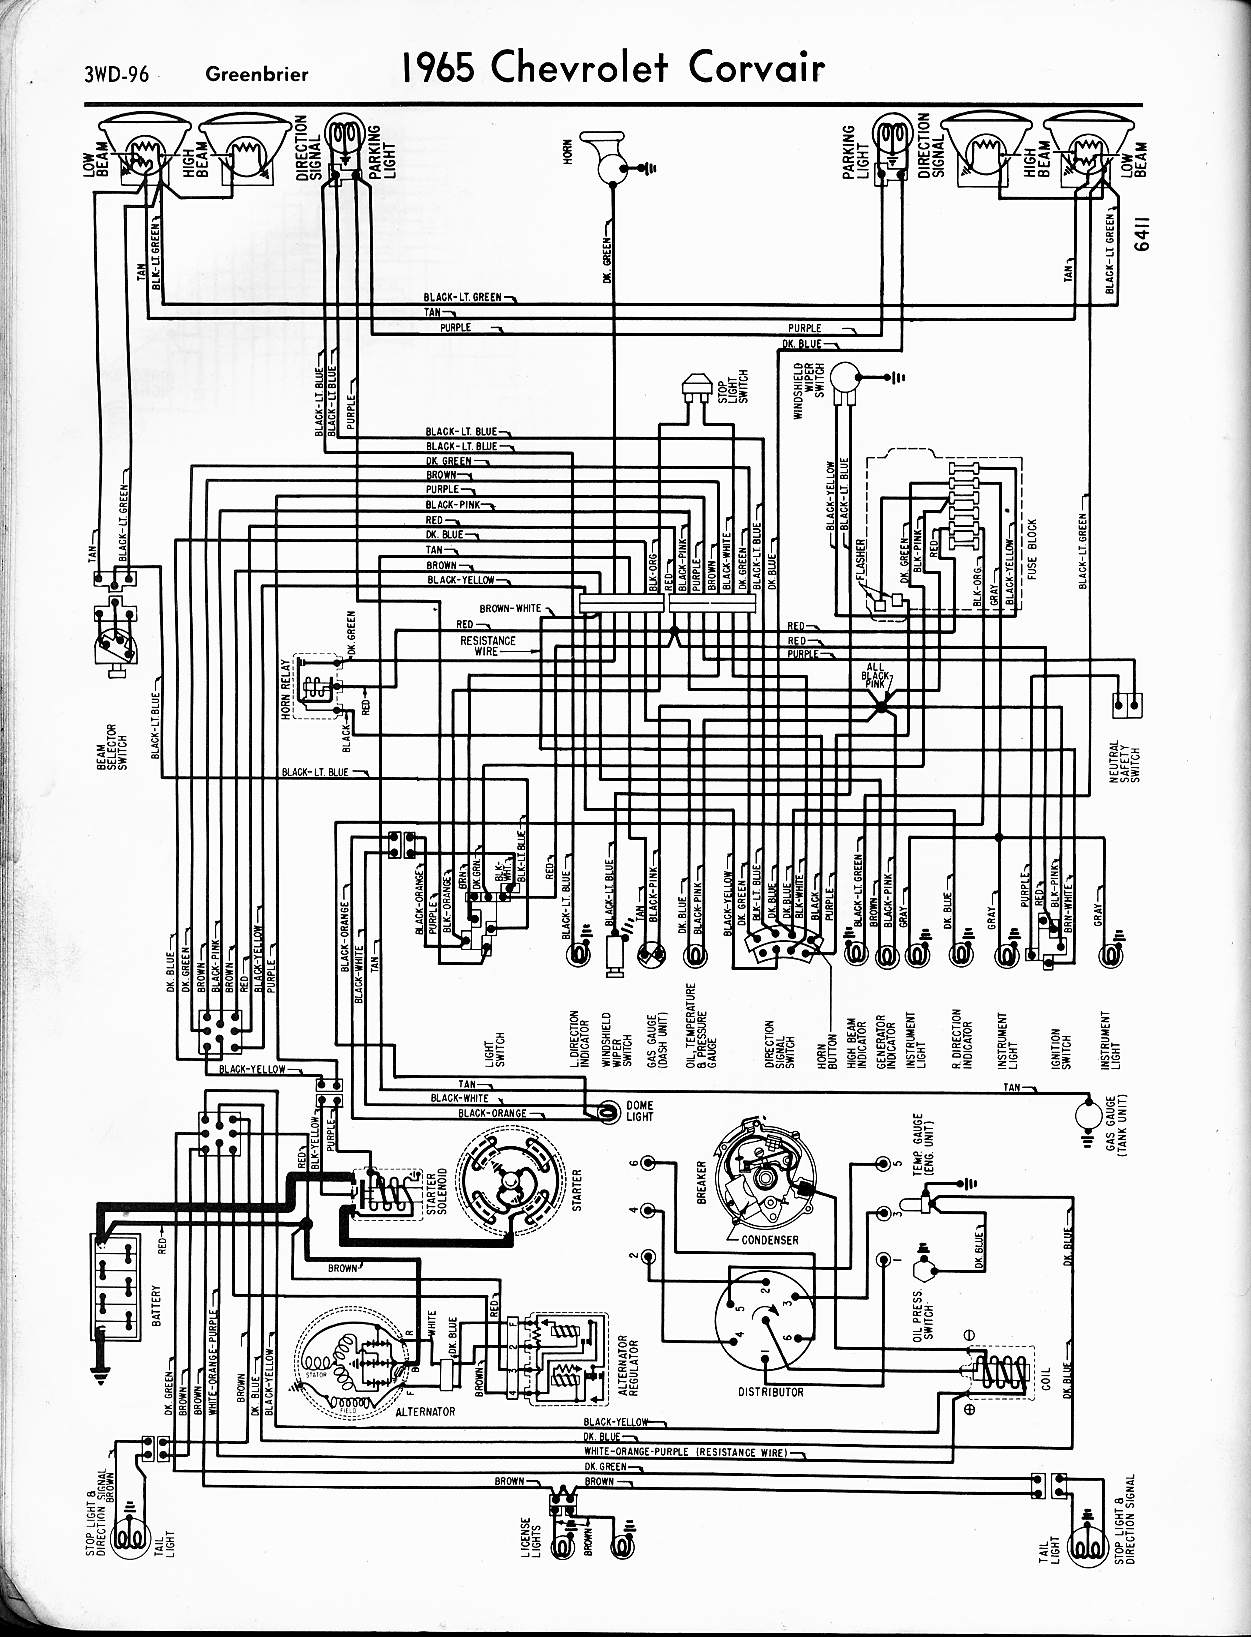 1959 Cadillac Wiring Diagram. Cadillac. Auto Fuse Box Diagram